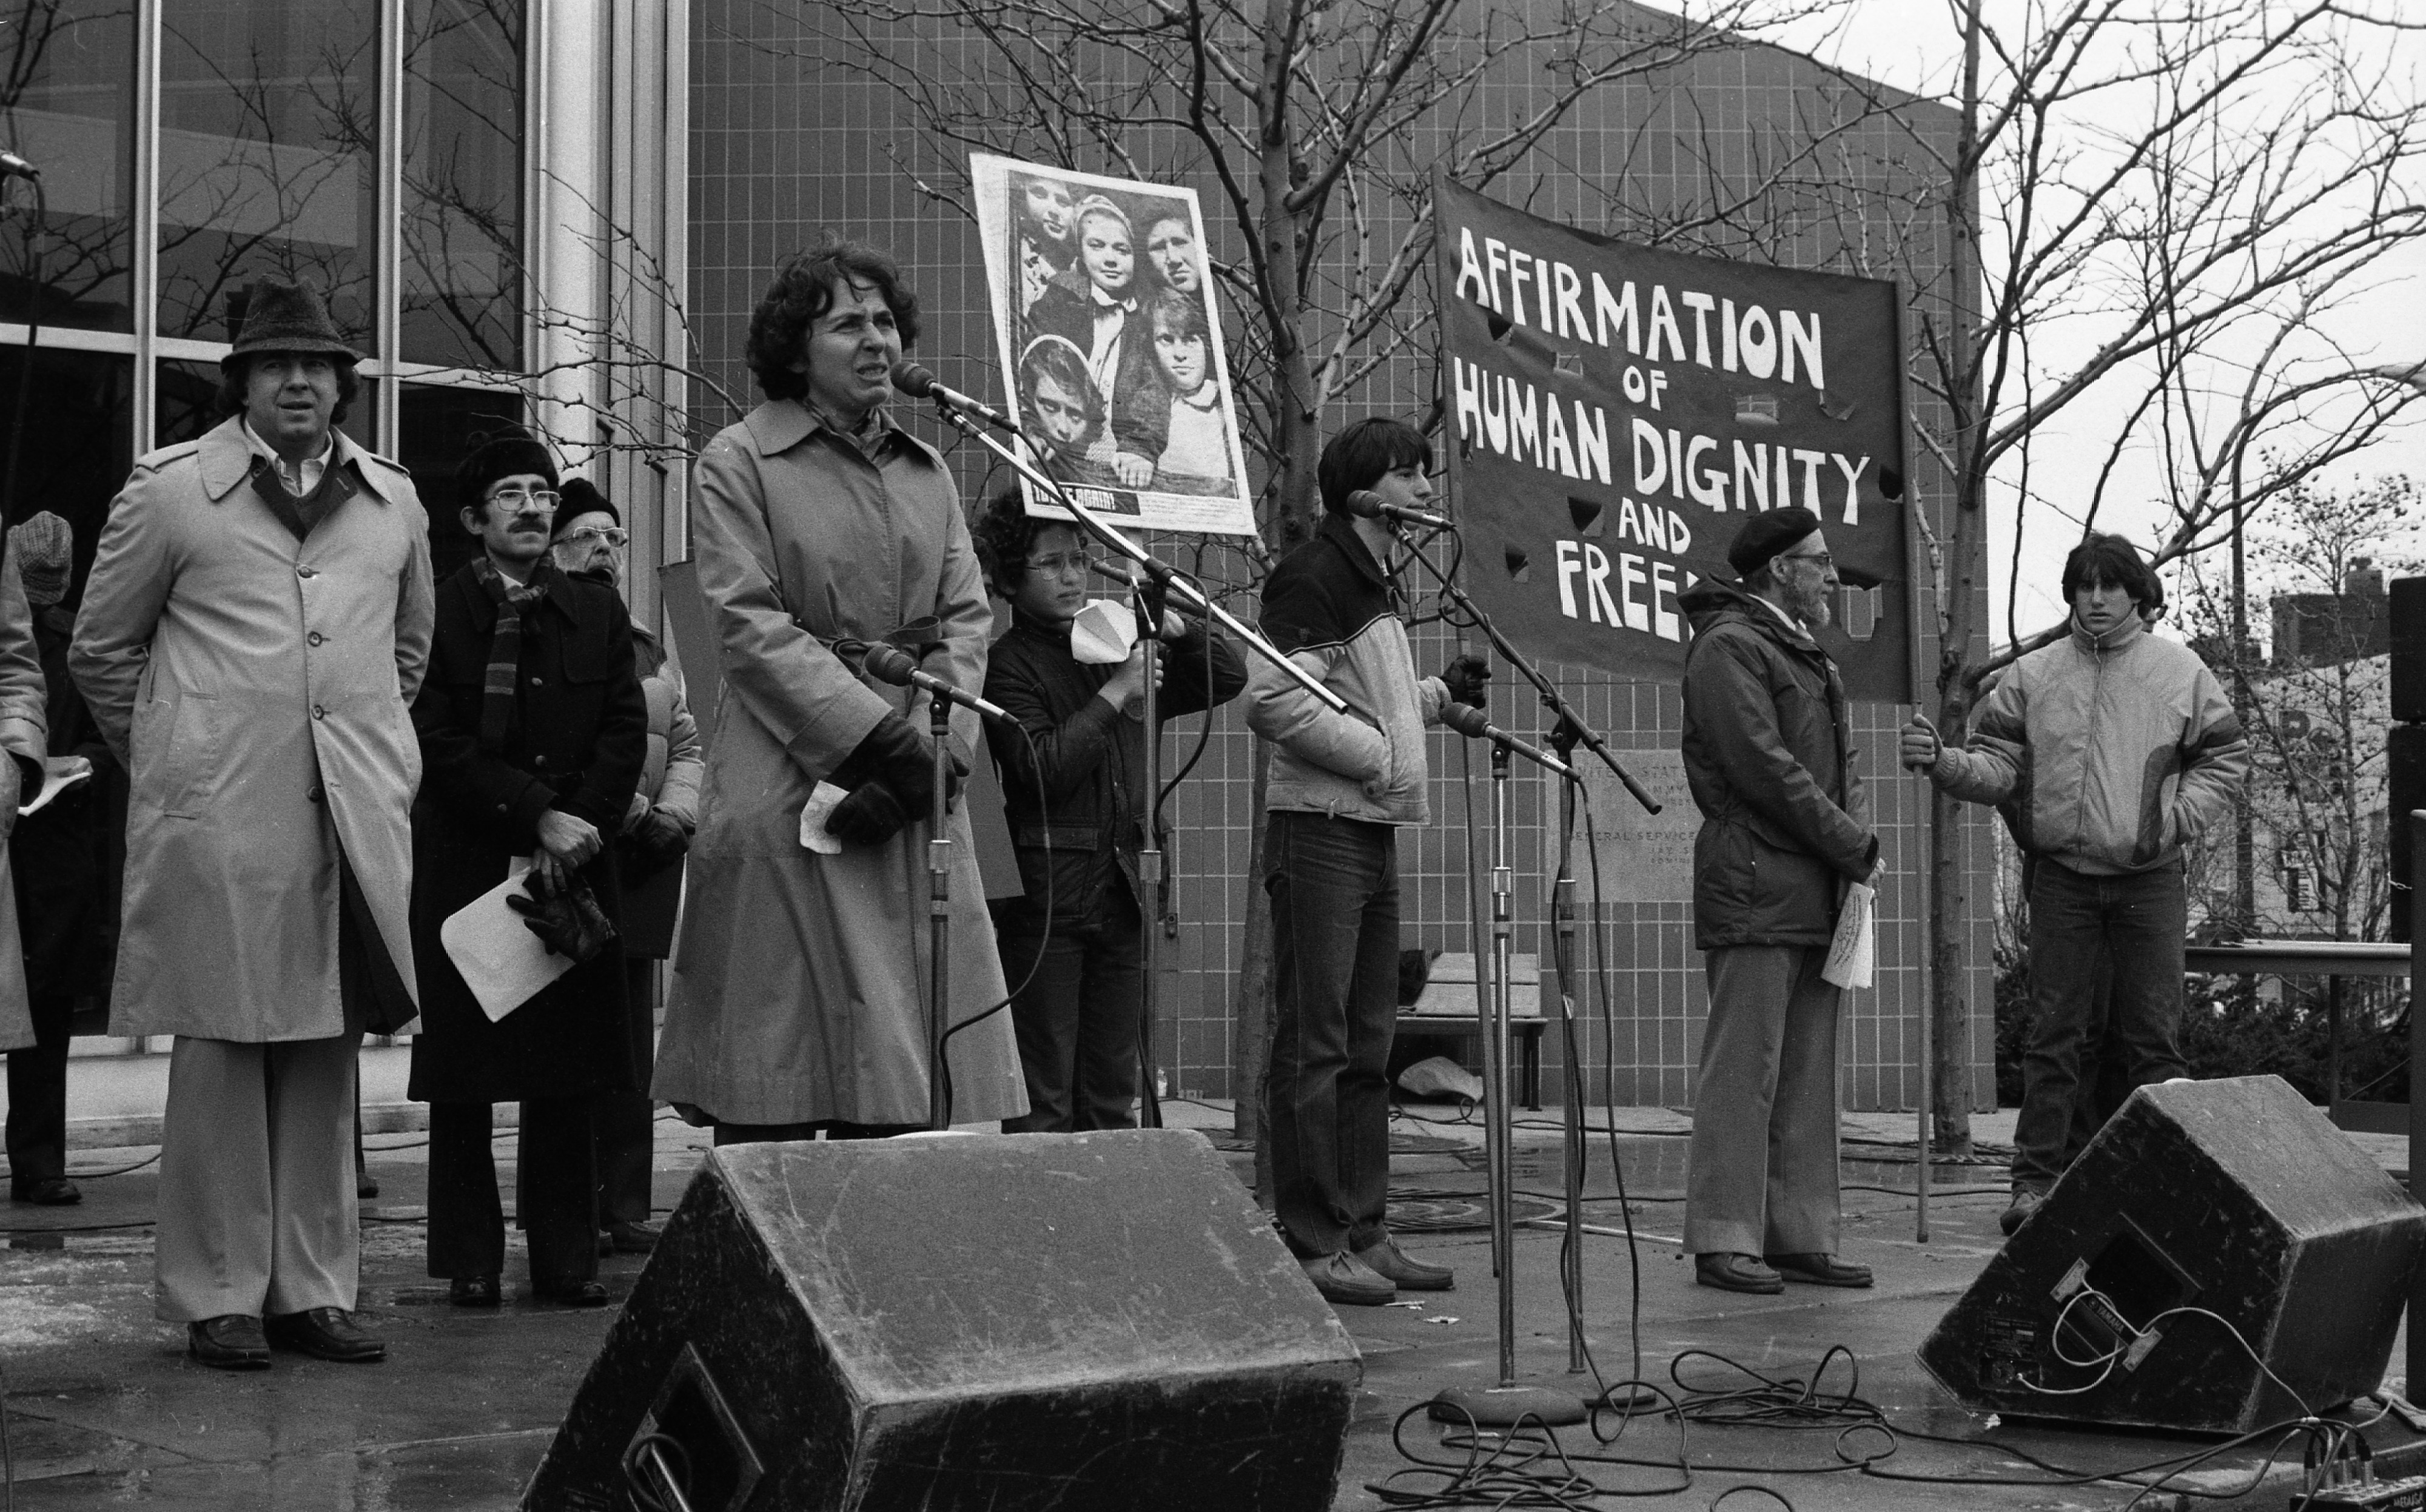 Elaine Pitt of Jewish Community Council Speaks at Neo-Nazi Counter-Demonstrations at Federal Building, March 1982 image